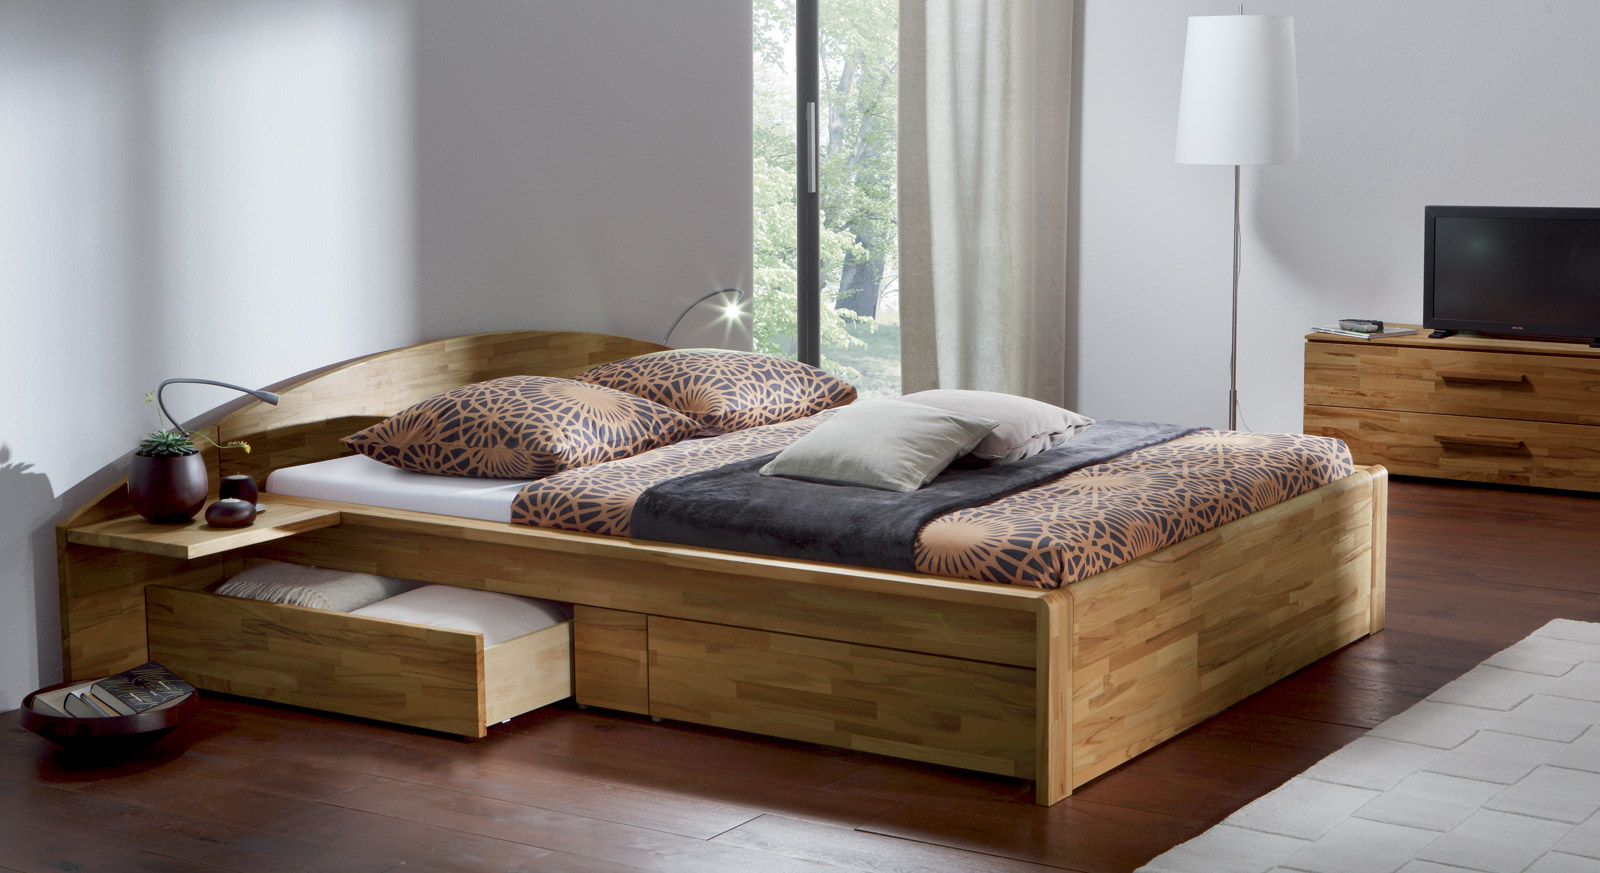 doppelbett mit schubladen weis traumhaus design. Black Bedroom Furniture Sets. Home Design Ideas